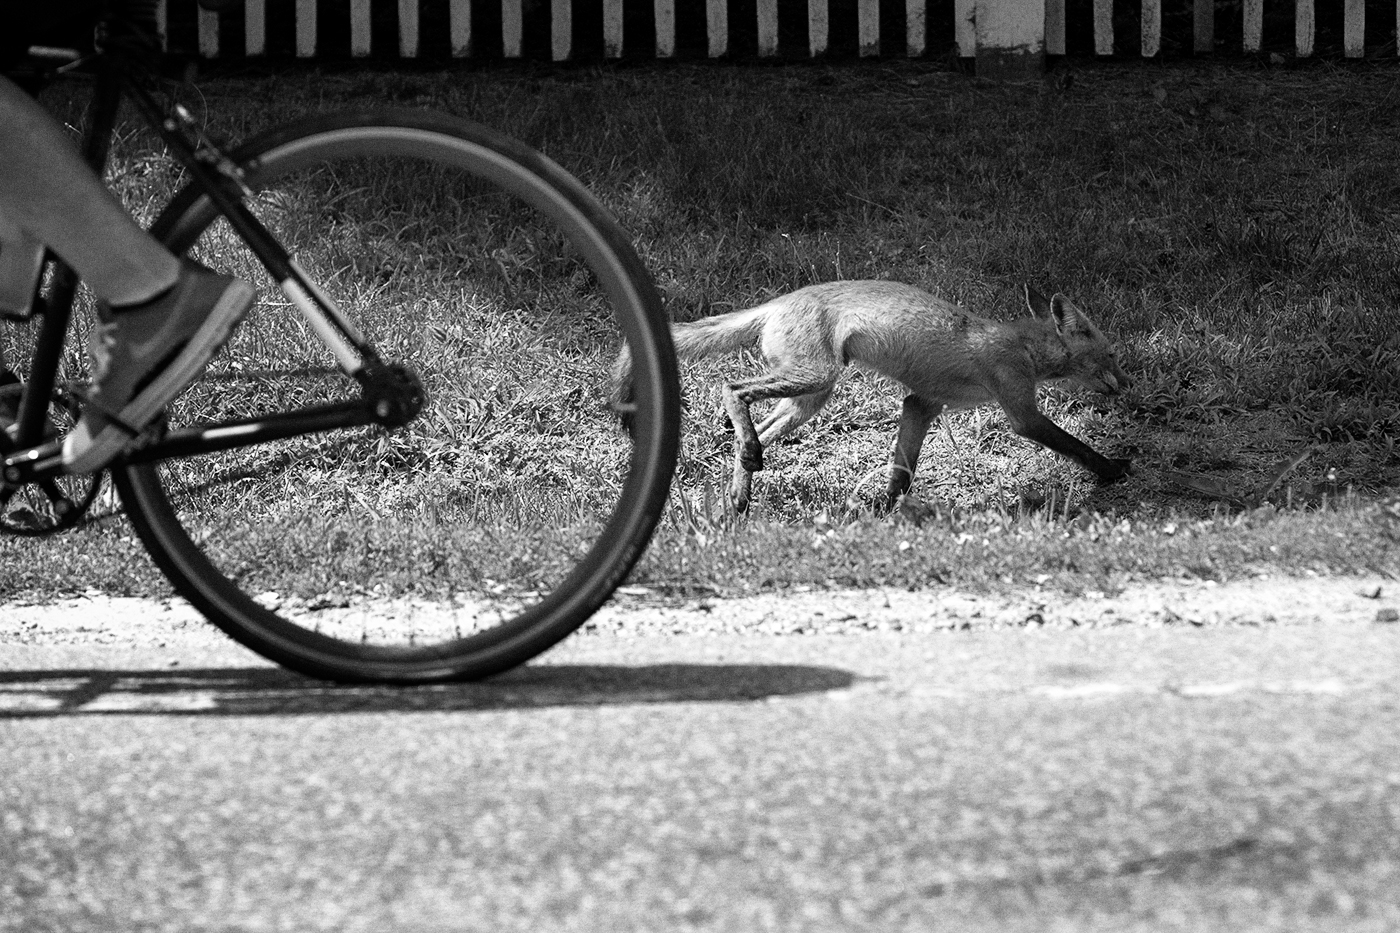 A fox runs in the opposite direction of a cyclist by the side of a road.